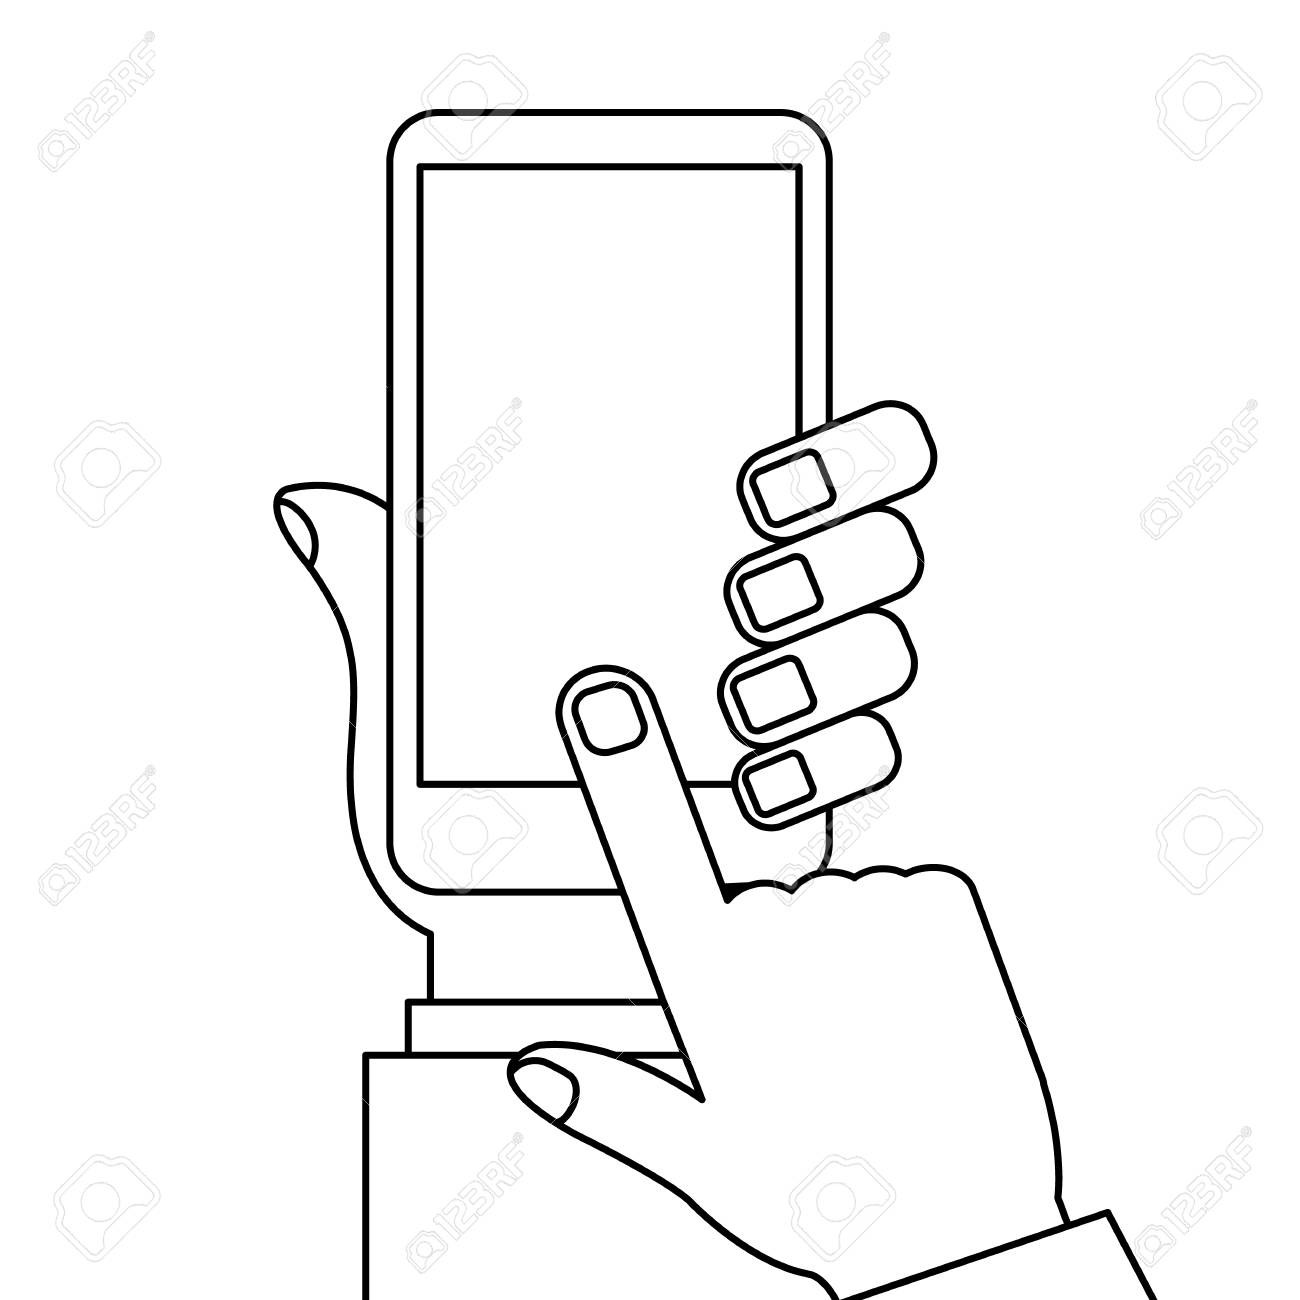 hand holding smartphone finger touching screen with blank white